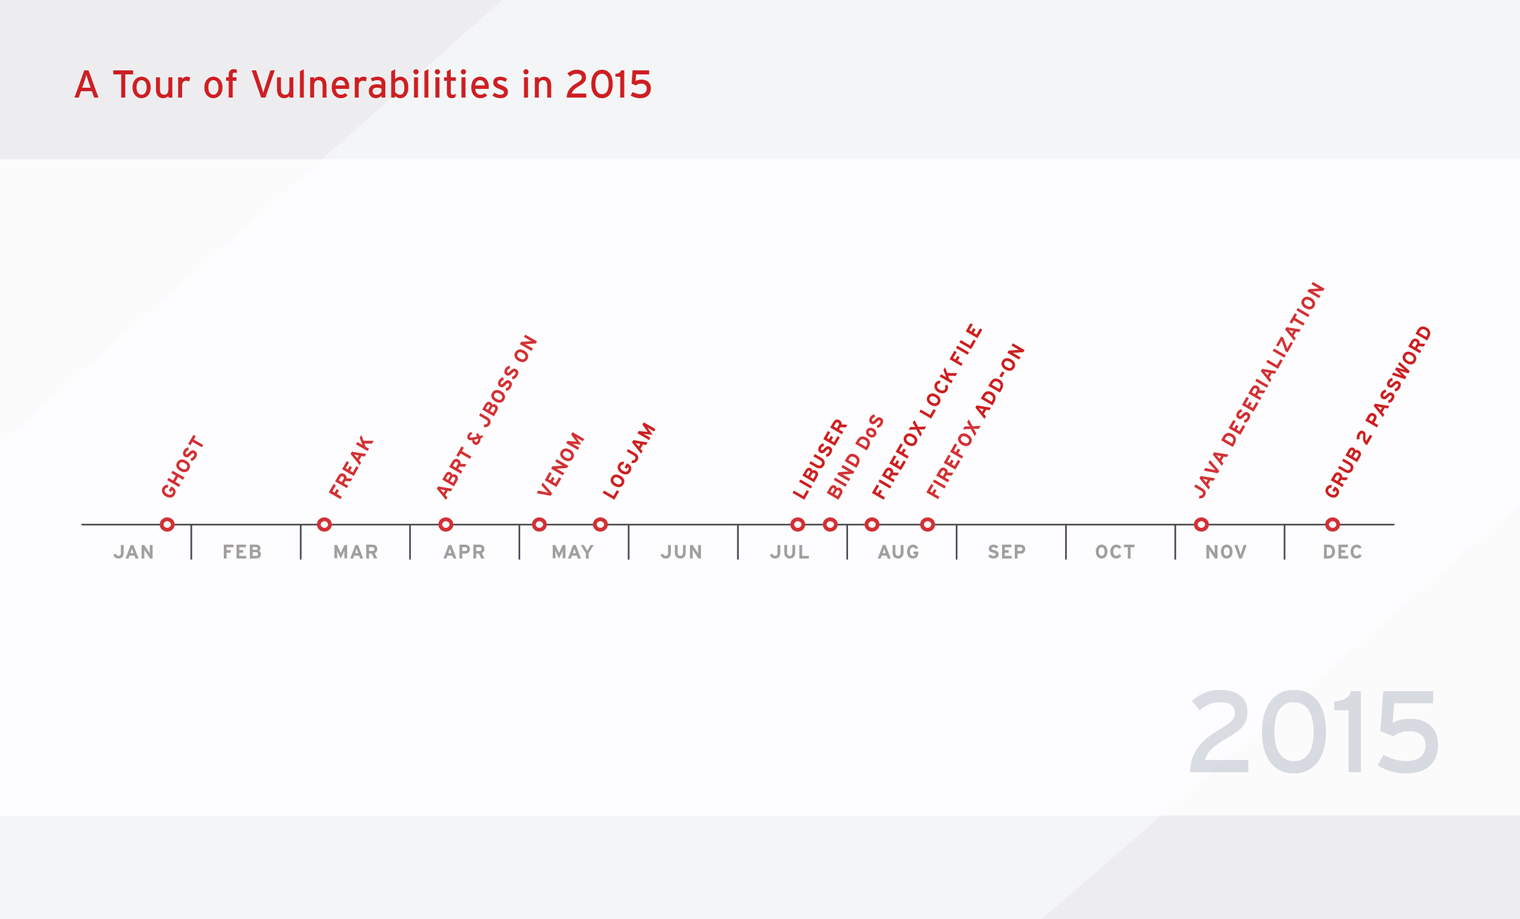 A tour of vulnerabilities in 2015